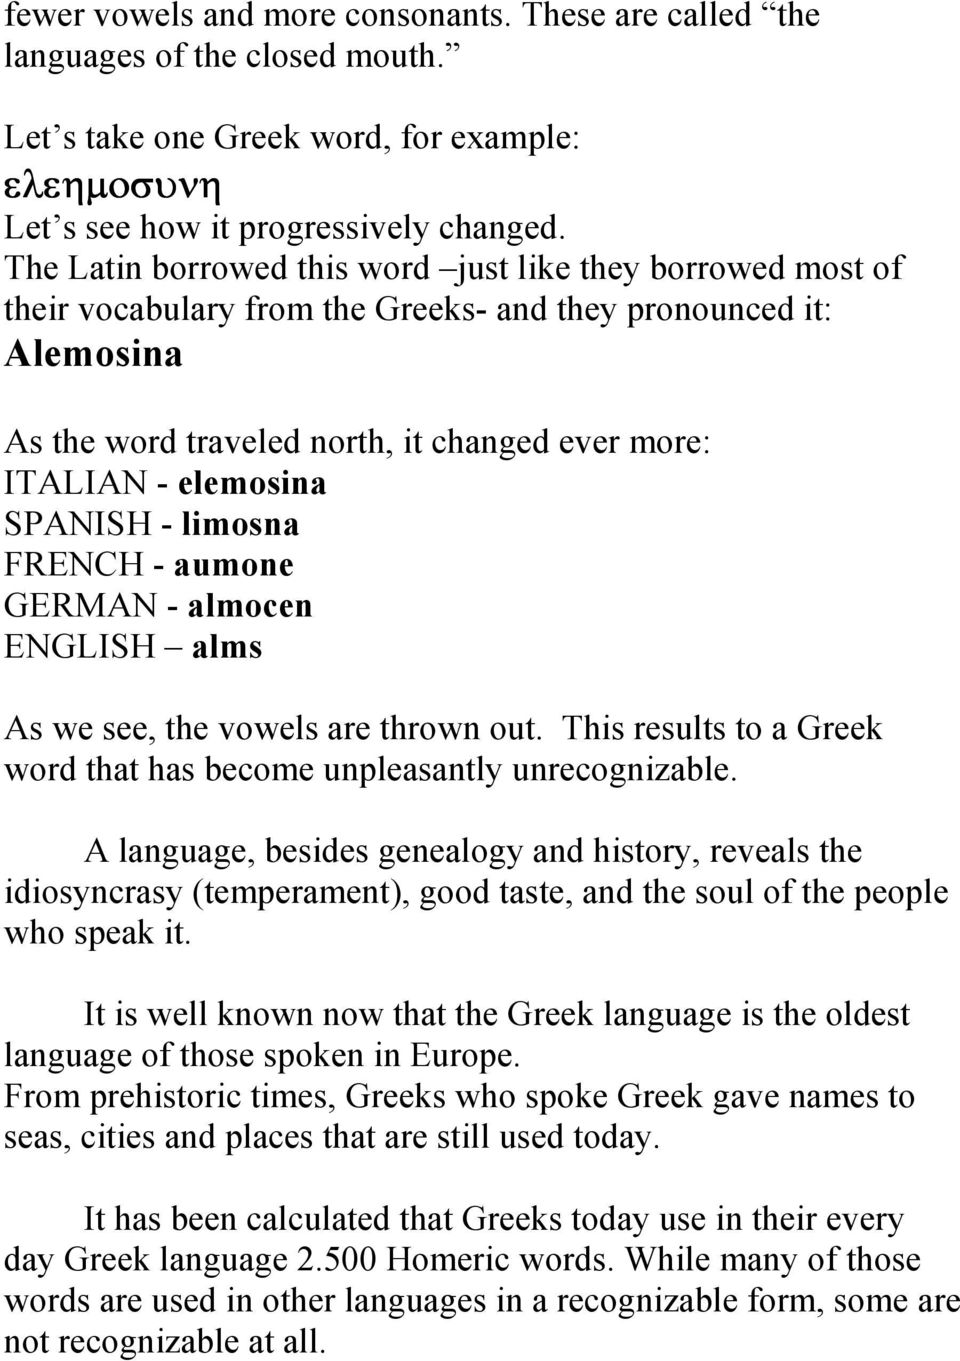 SPANISH - limosna FRENCH - aumone GERMAN - almocen ENGLISH alms As we see, the vowels are thrown out. This results to a Greek word that has become unpleasantly unrecognizable.